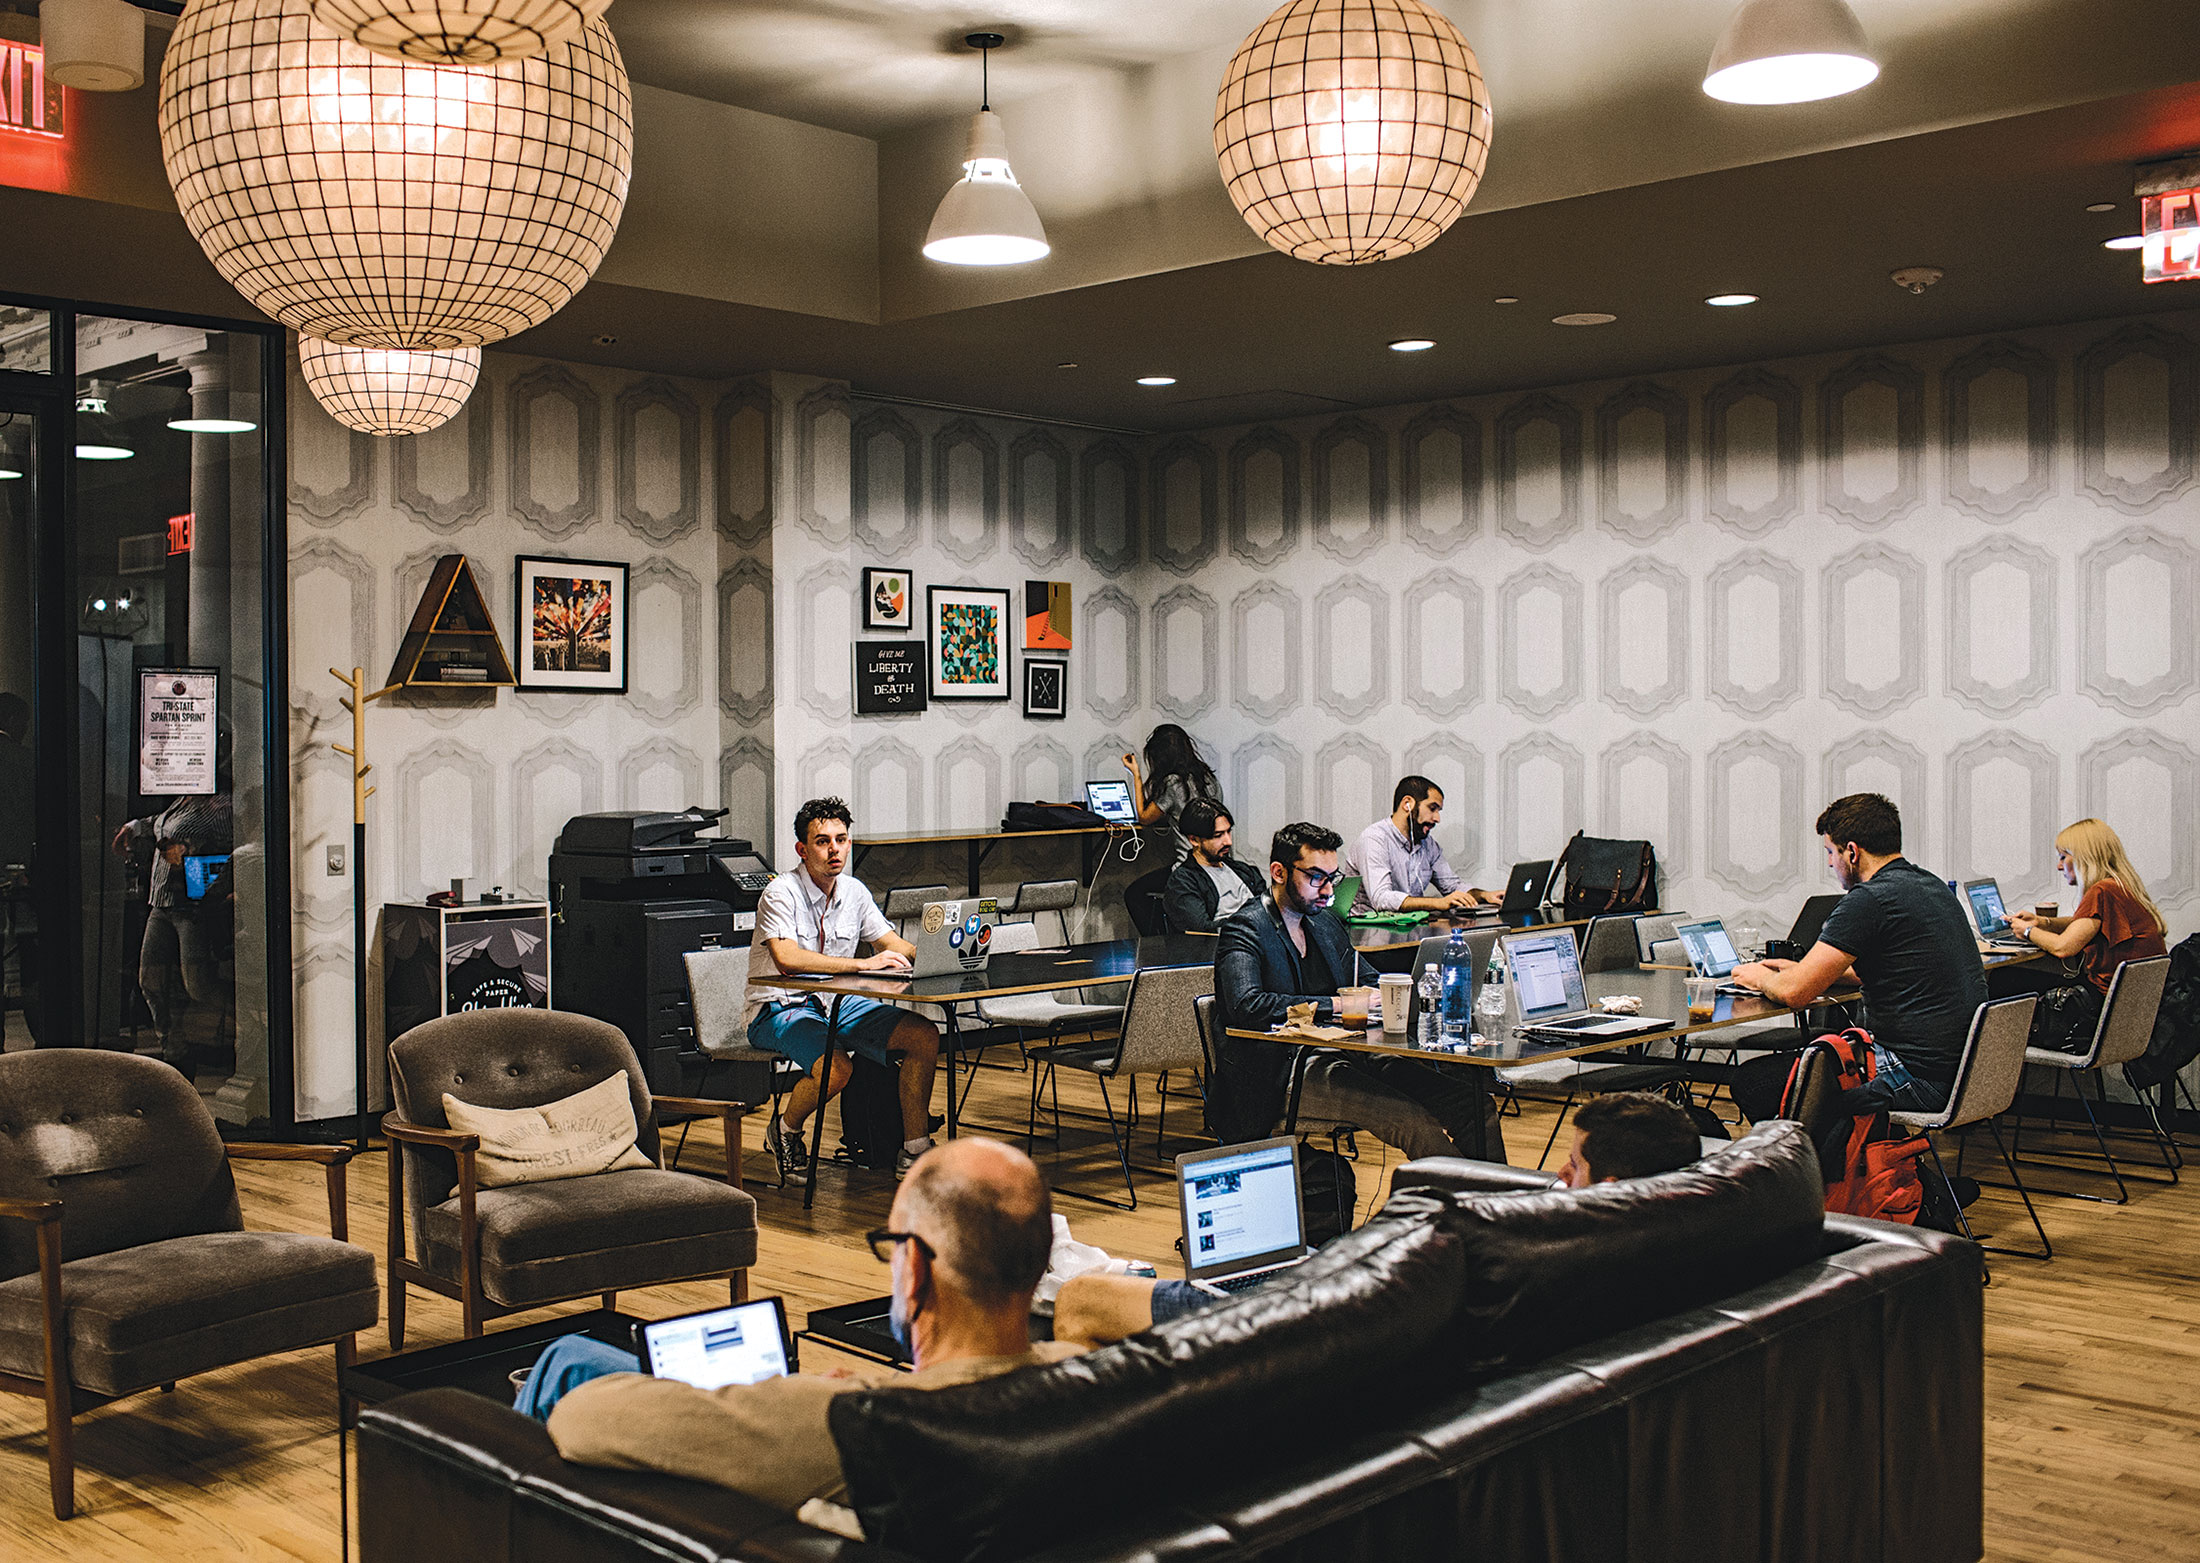 WeWork Real Estate Empire or Shared Office Space for a